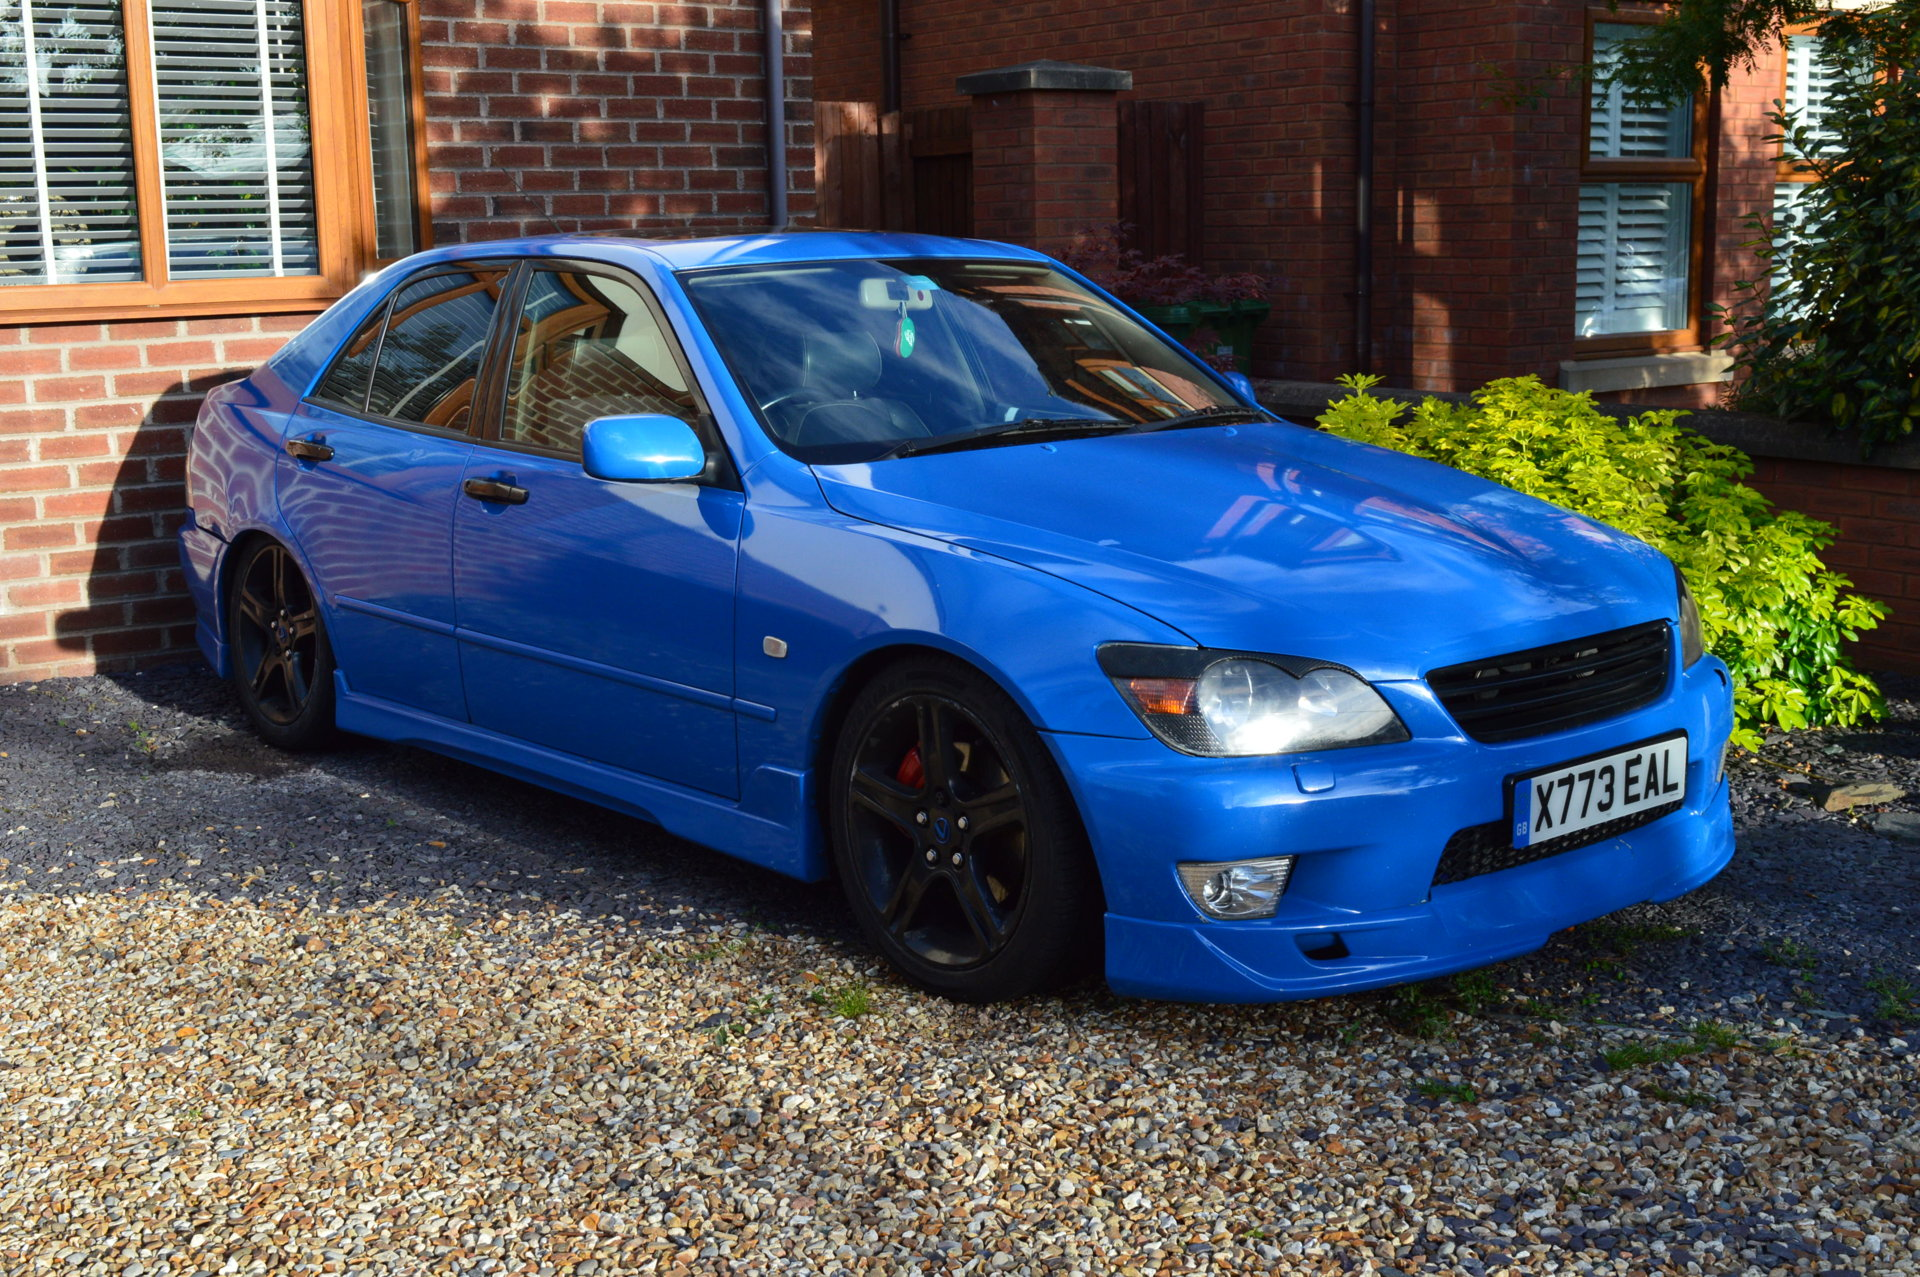 Brand Names Of Cars >> SOLD - Supercharged Lexus IS200 | Driftworks Forum